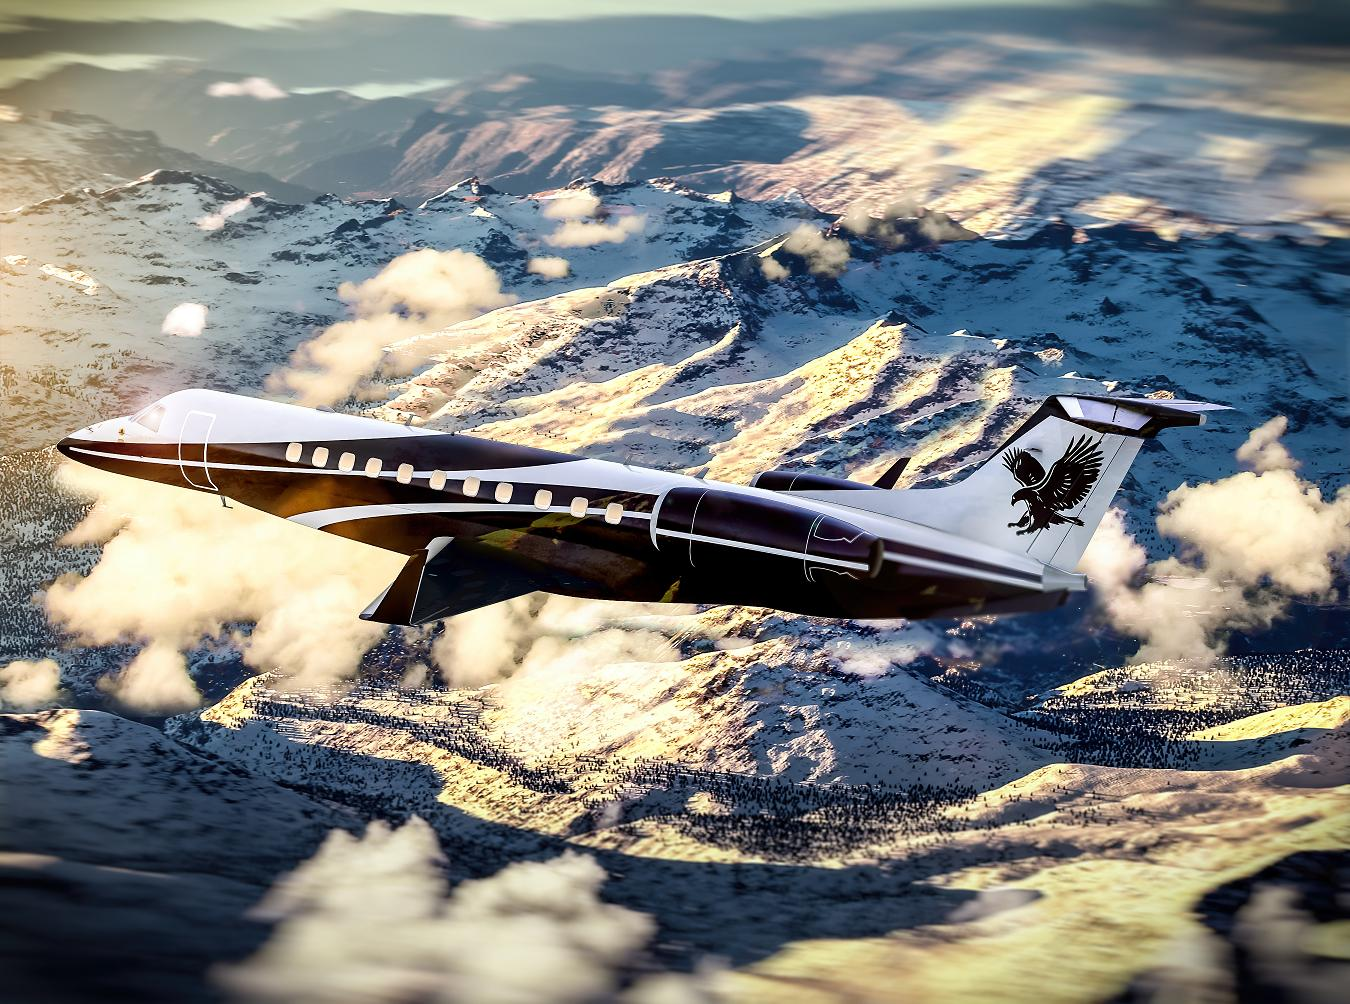 Embraer Executive Jets announces order for new Legacy 650 large jet to an undisclosed customer in the Middle East